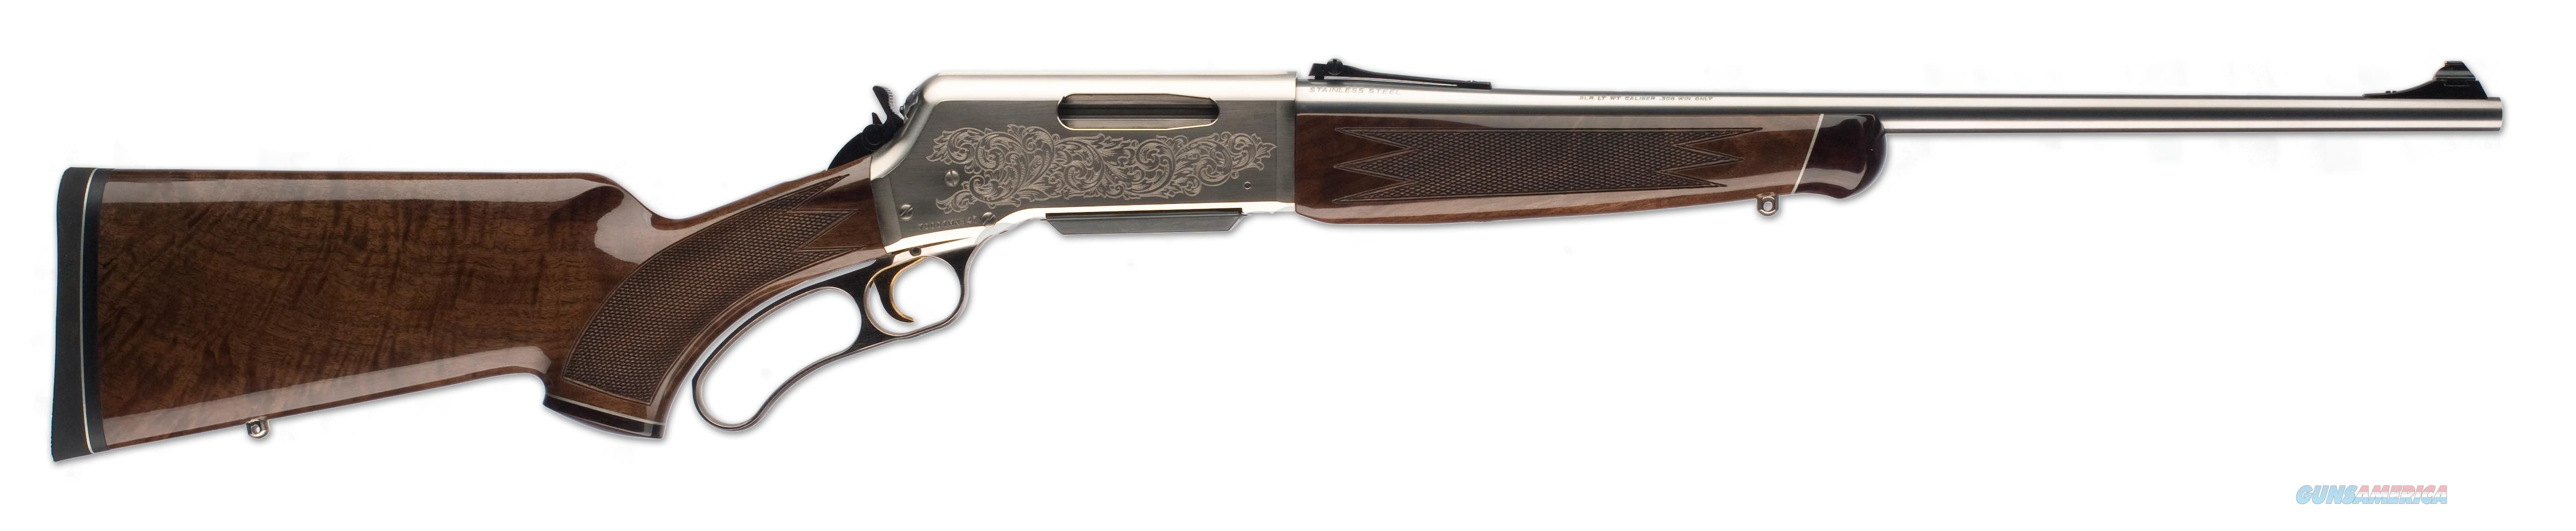 """Browning White Gold Medallion .270 WSM 22"""" 3 Rds 034017148   Guns > Rifles > Browning Rifles > Lever Action"""